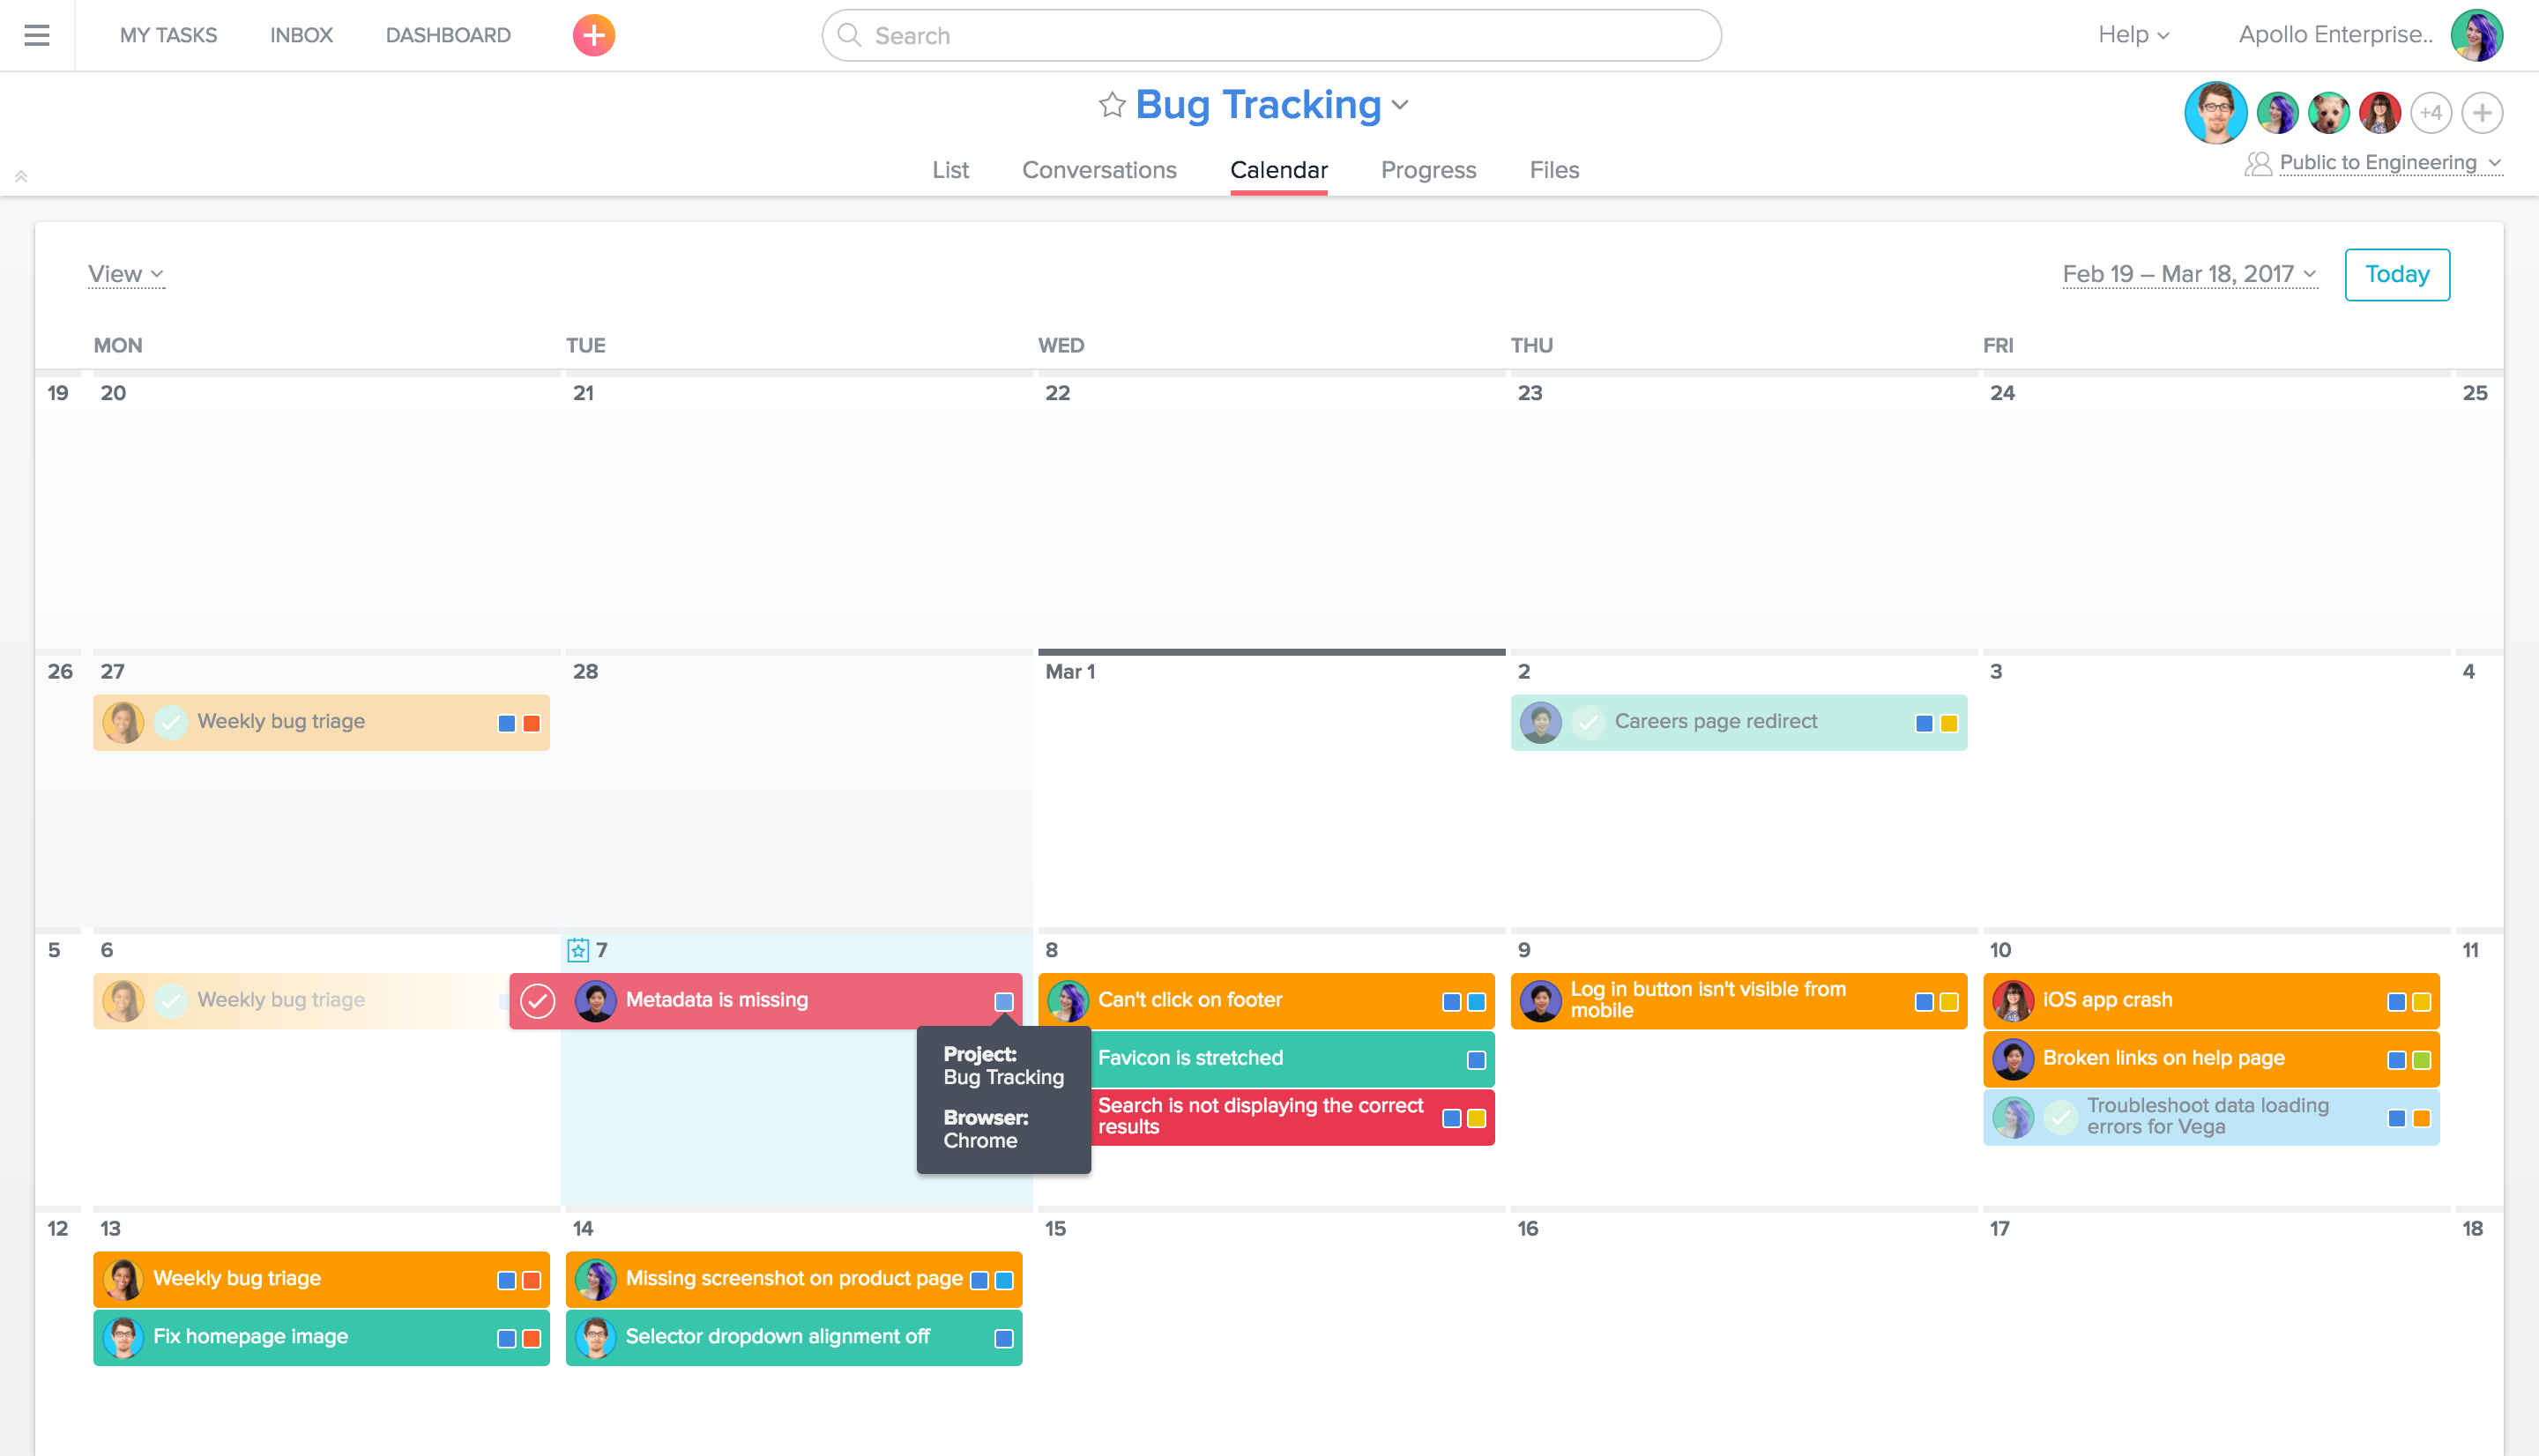 See custom field values by hovering over them in Calendar View of Asana